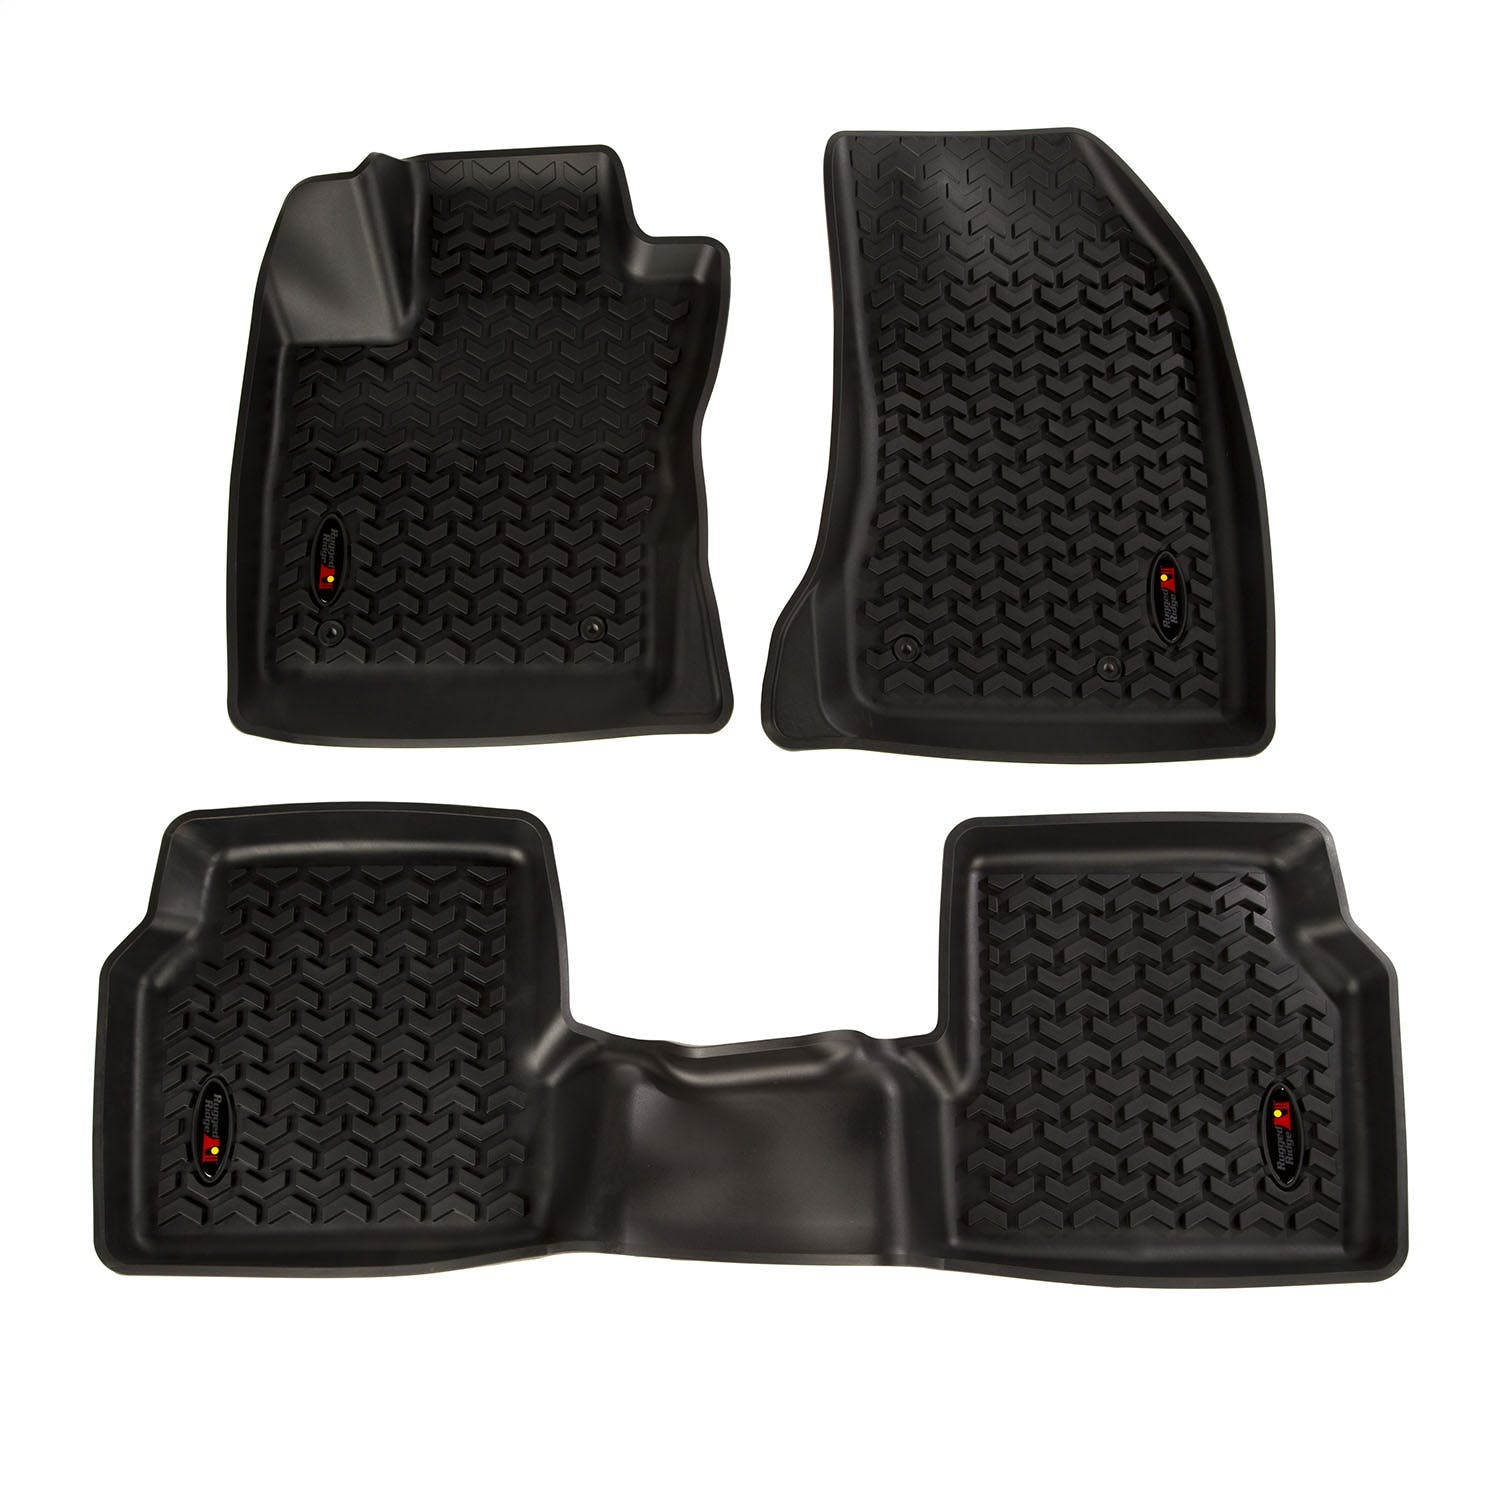 3 Pieces Rugged Ridge 12987.26 Black All-Terrain Front and Rear Floor Liner Kit